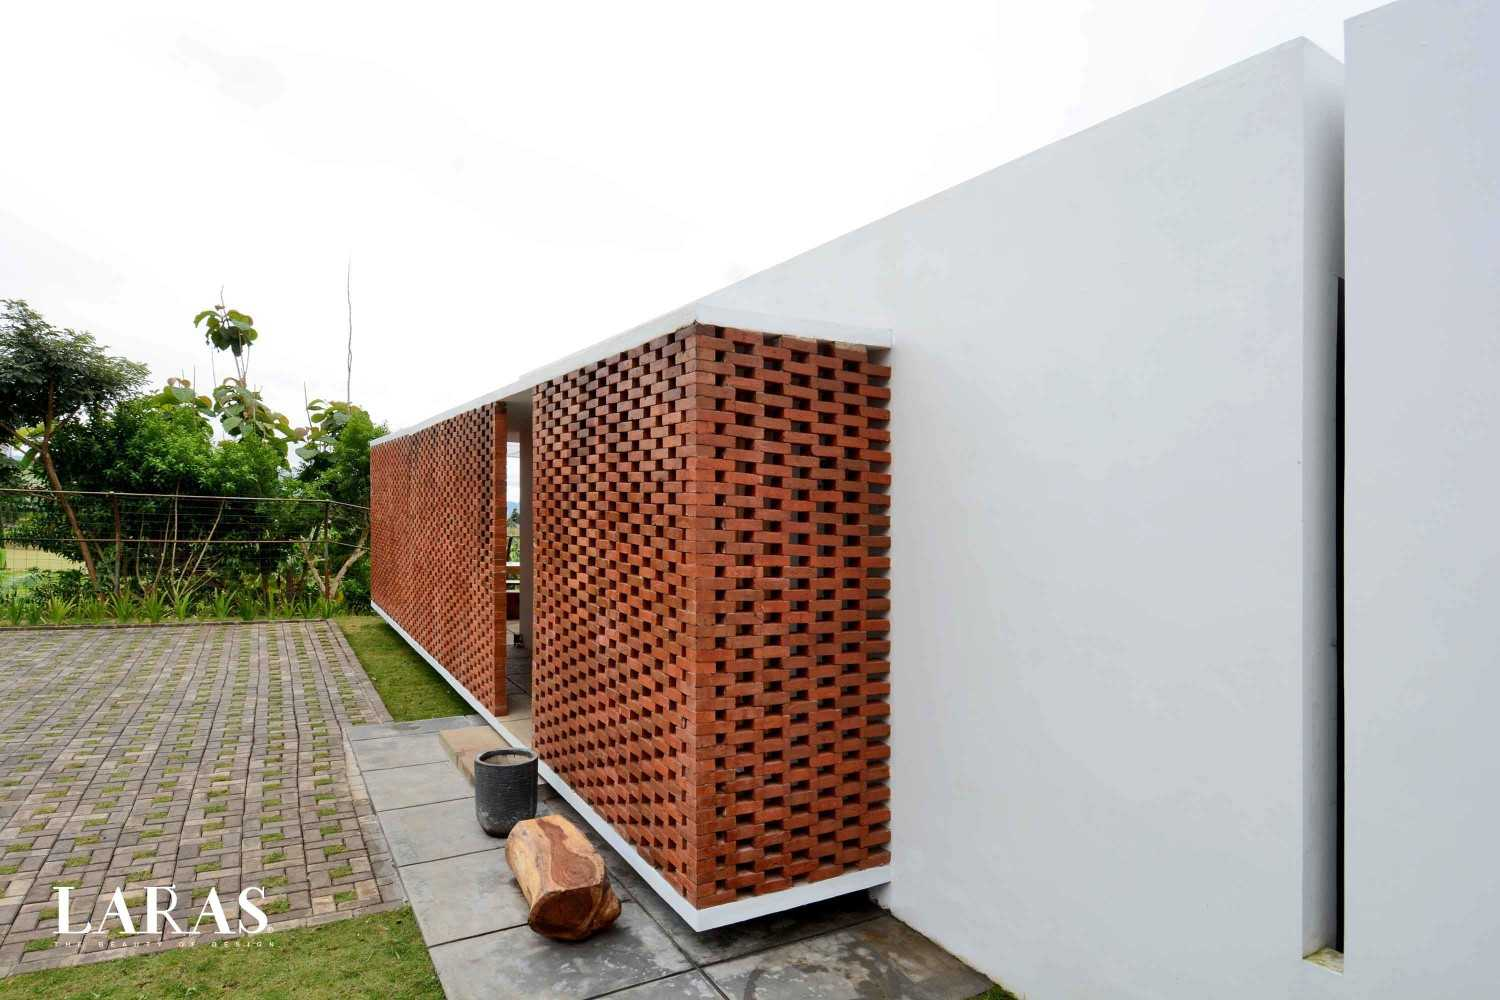 Eben White Perforated Brick House Bandung Bandung Corner View Modern,tropis 29653